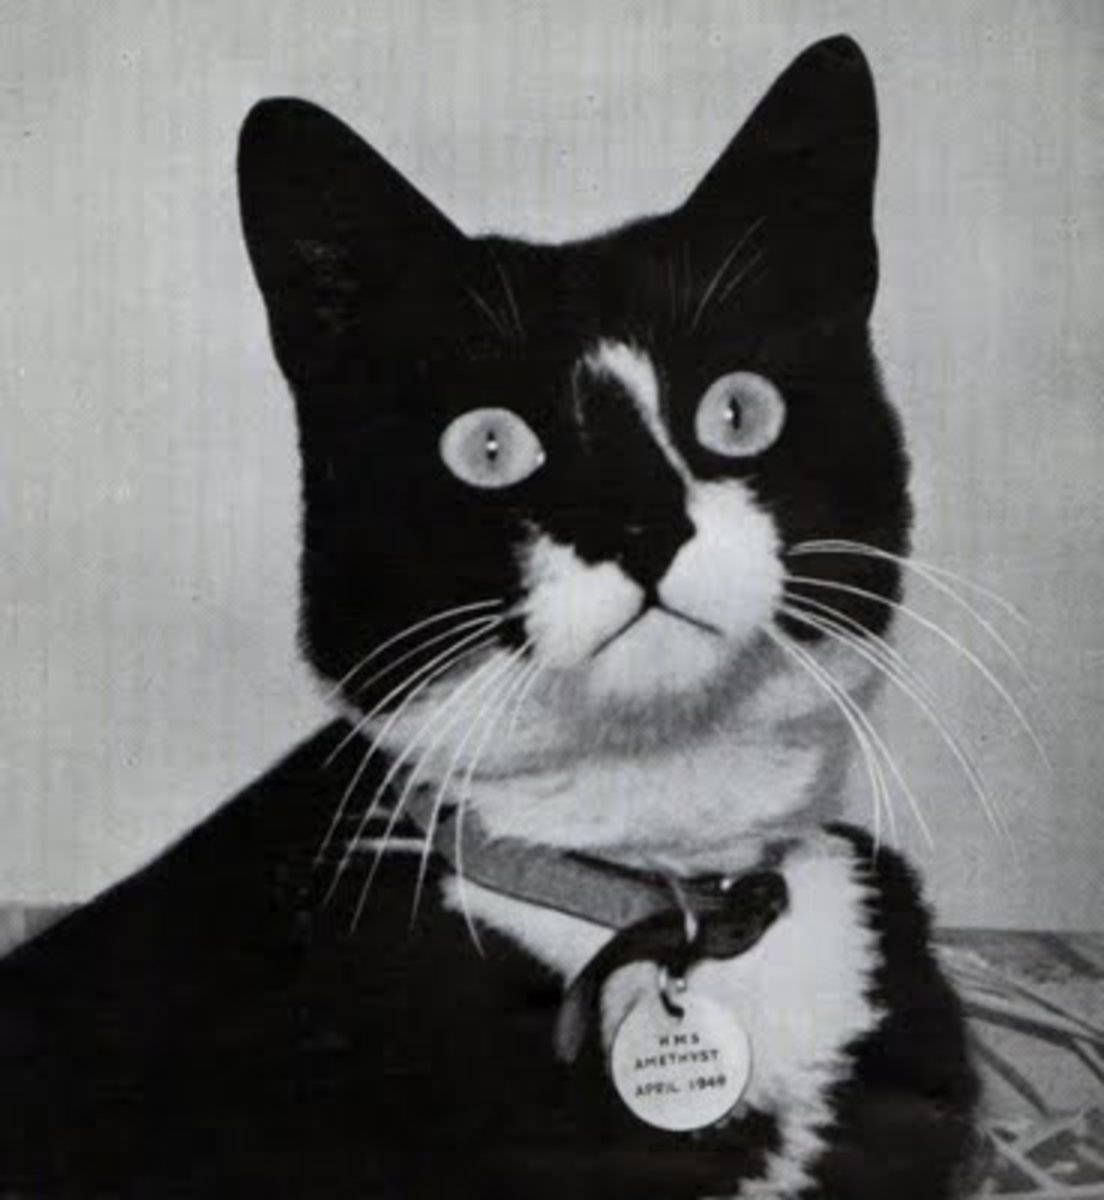 Unsinkable Sam: The Cat That Always Came Back